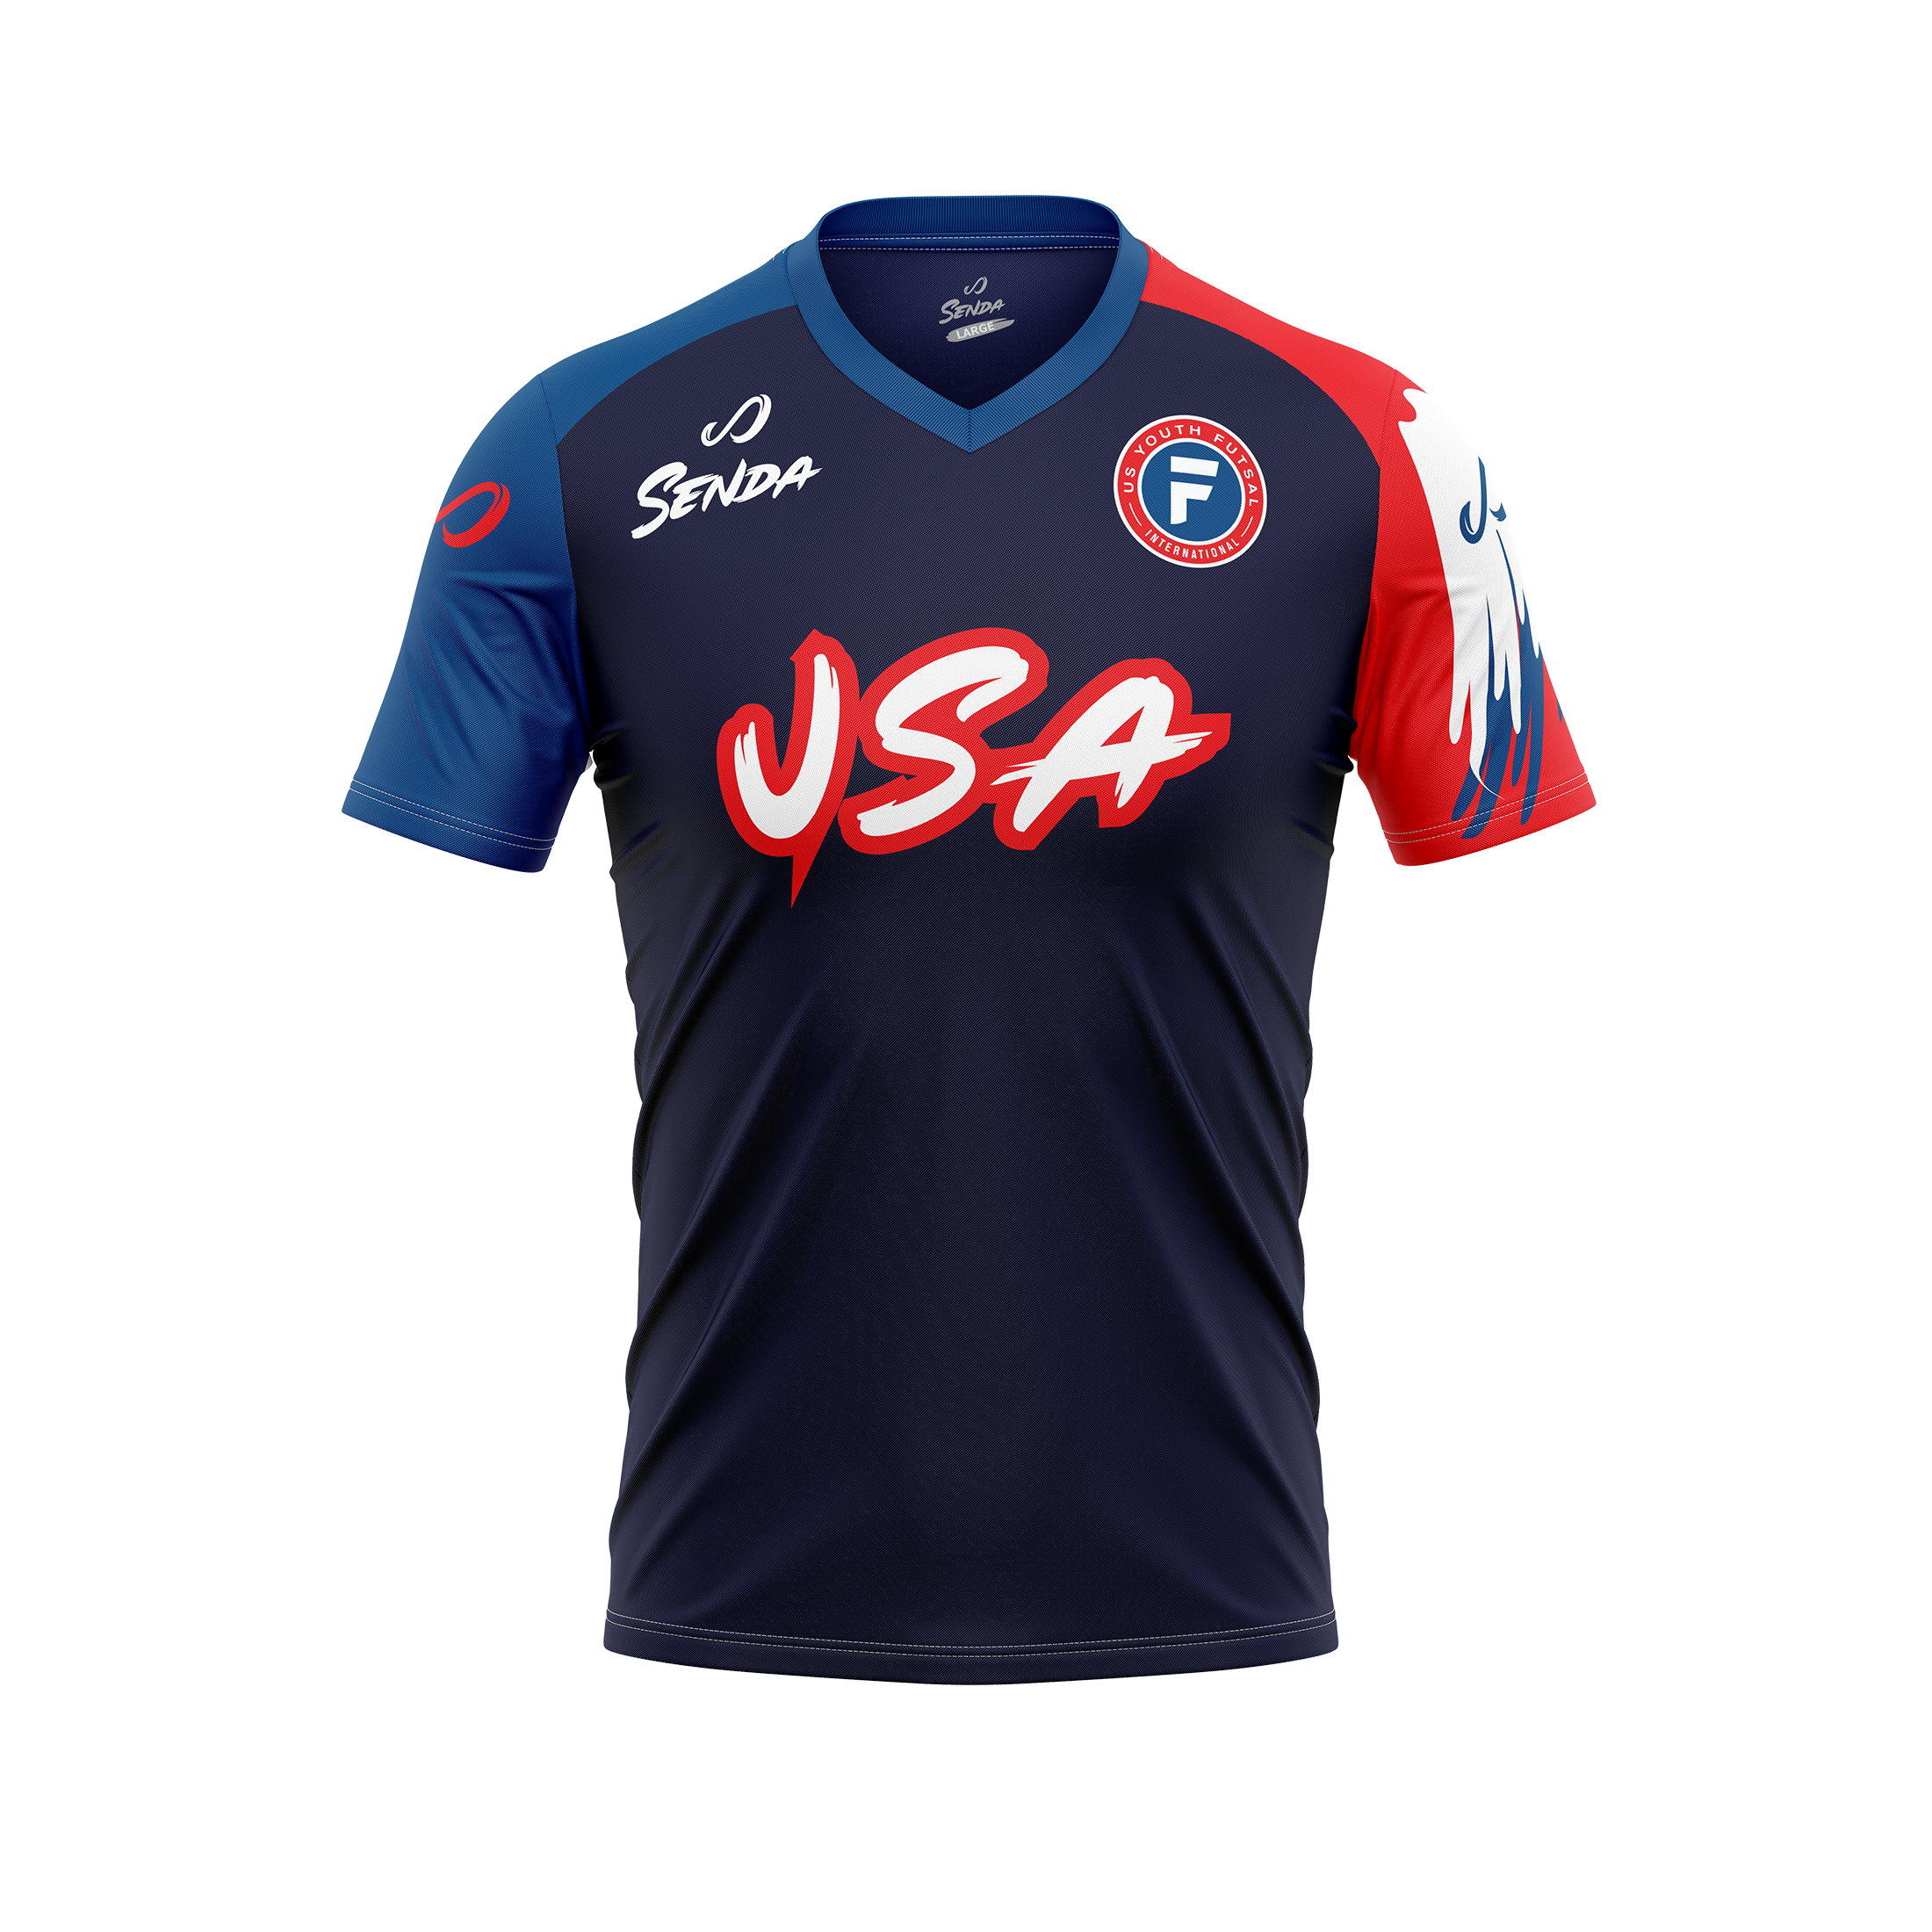 USYF away jersey, front